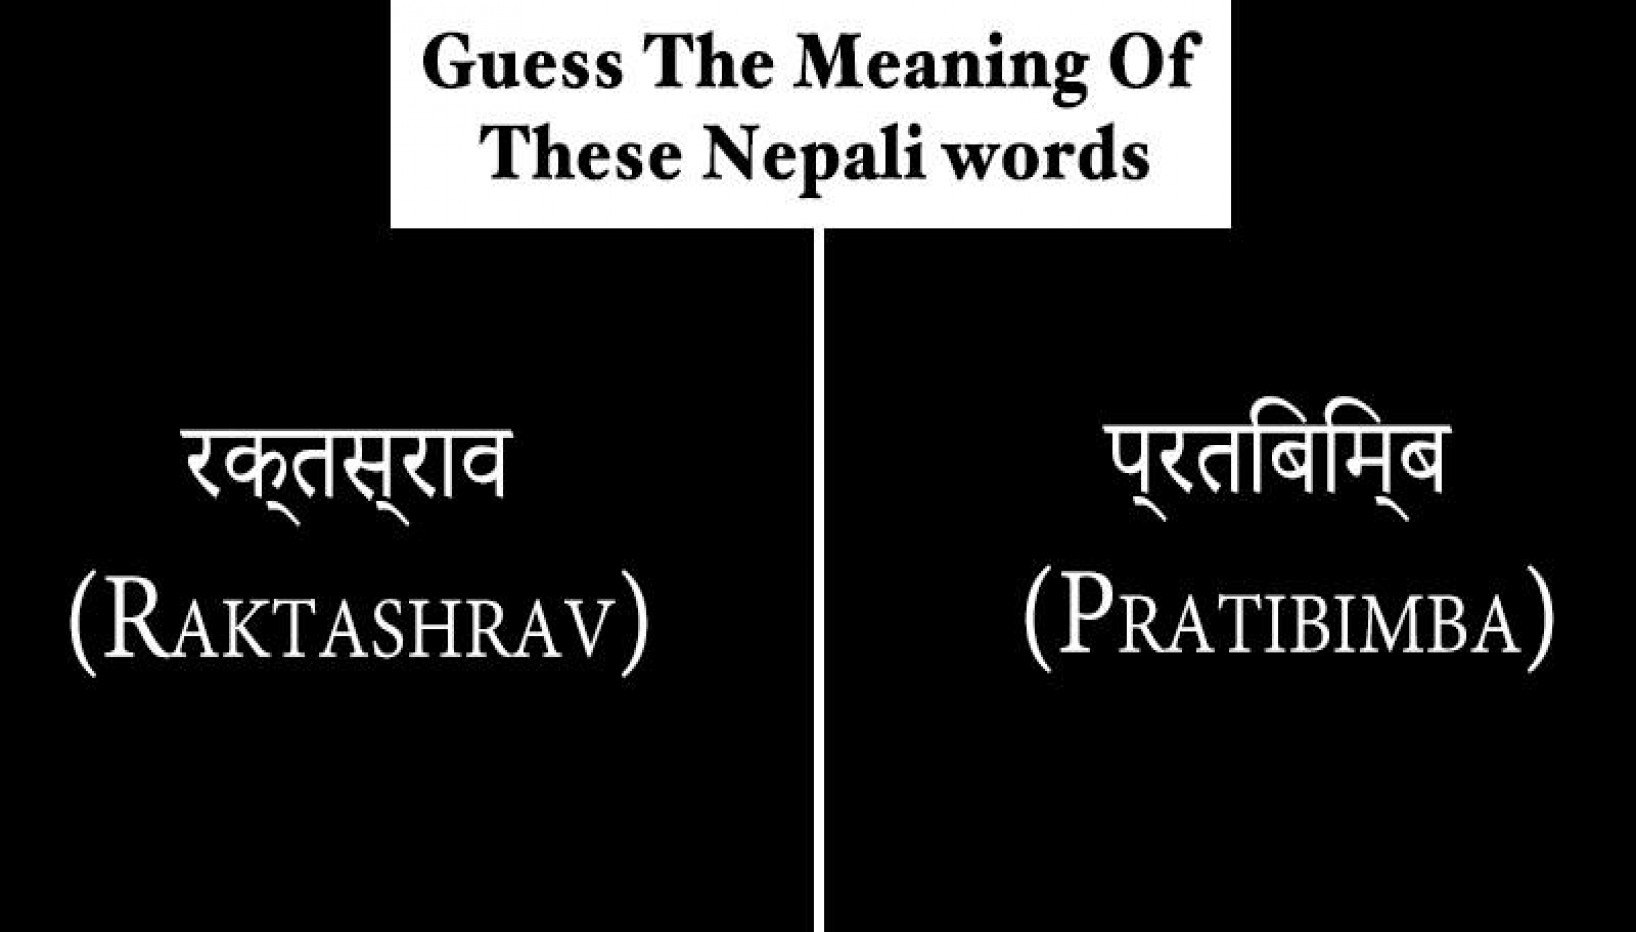 QUIZ: Make Your Nepali Guru Proud By Guessing The Meaning Of These Nepali Words